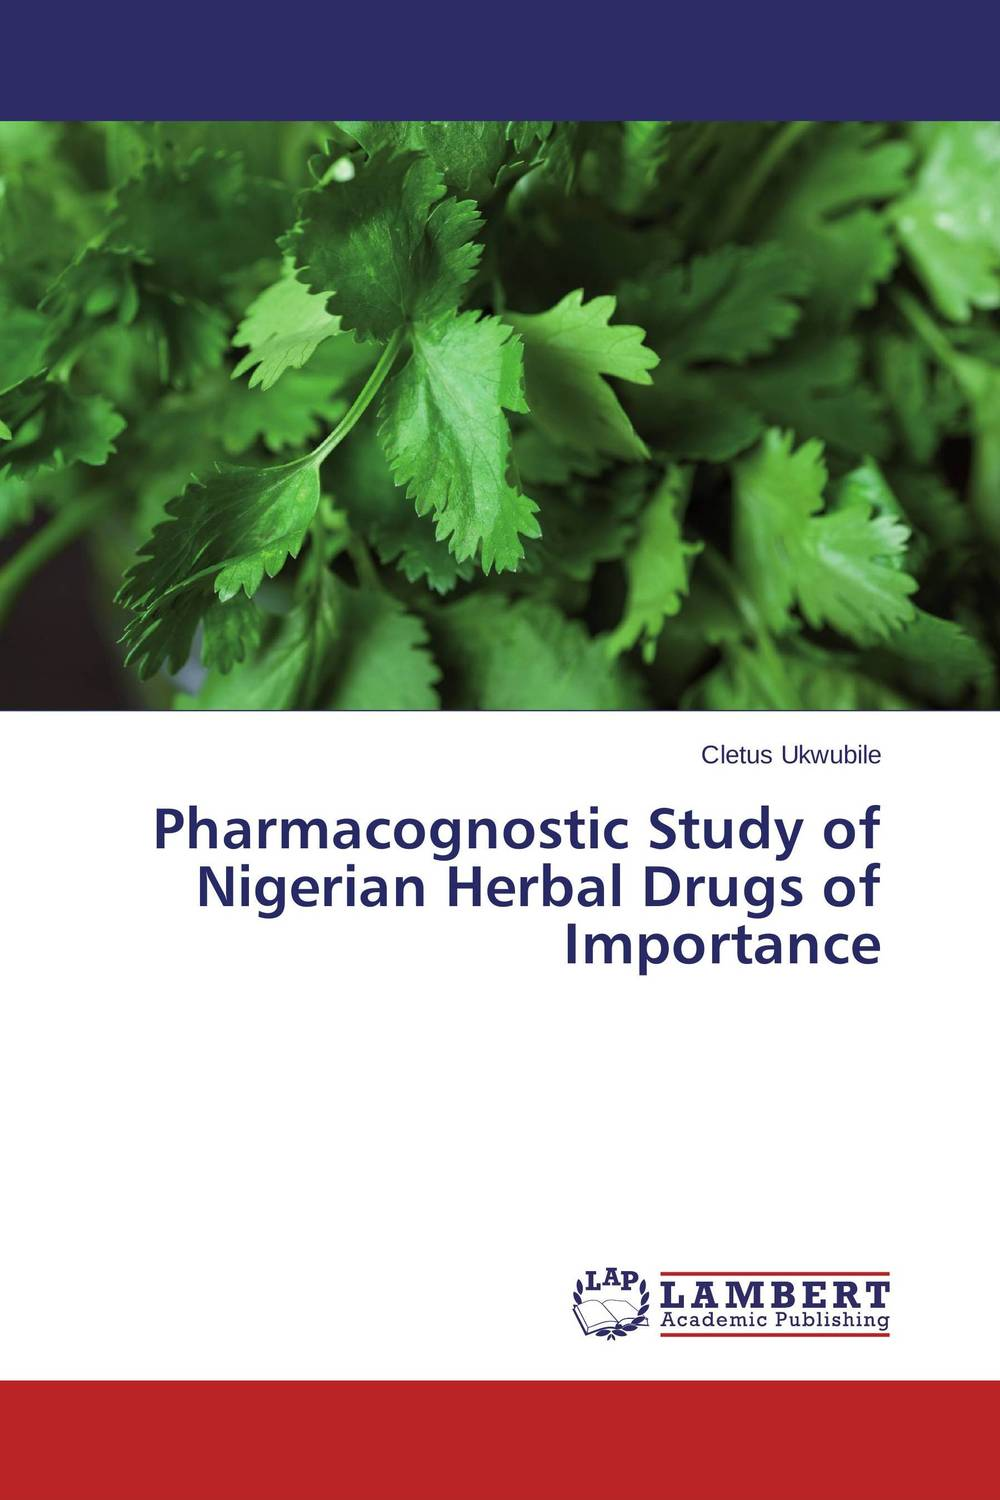 Pharmacognostic Study of Nigerian Herbal Drugs of Importance pharmacognostic study of nigerian herbal drugs of importance